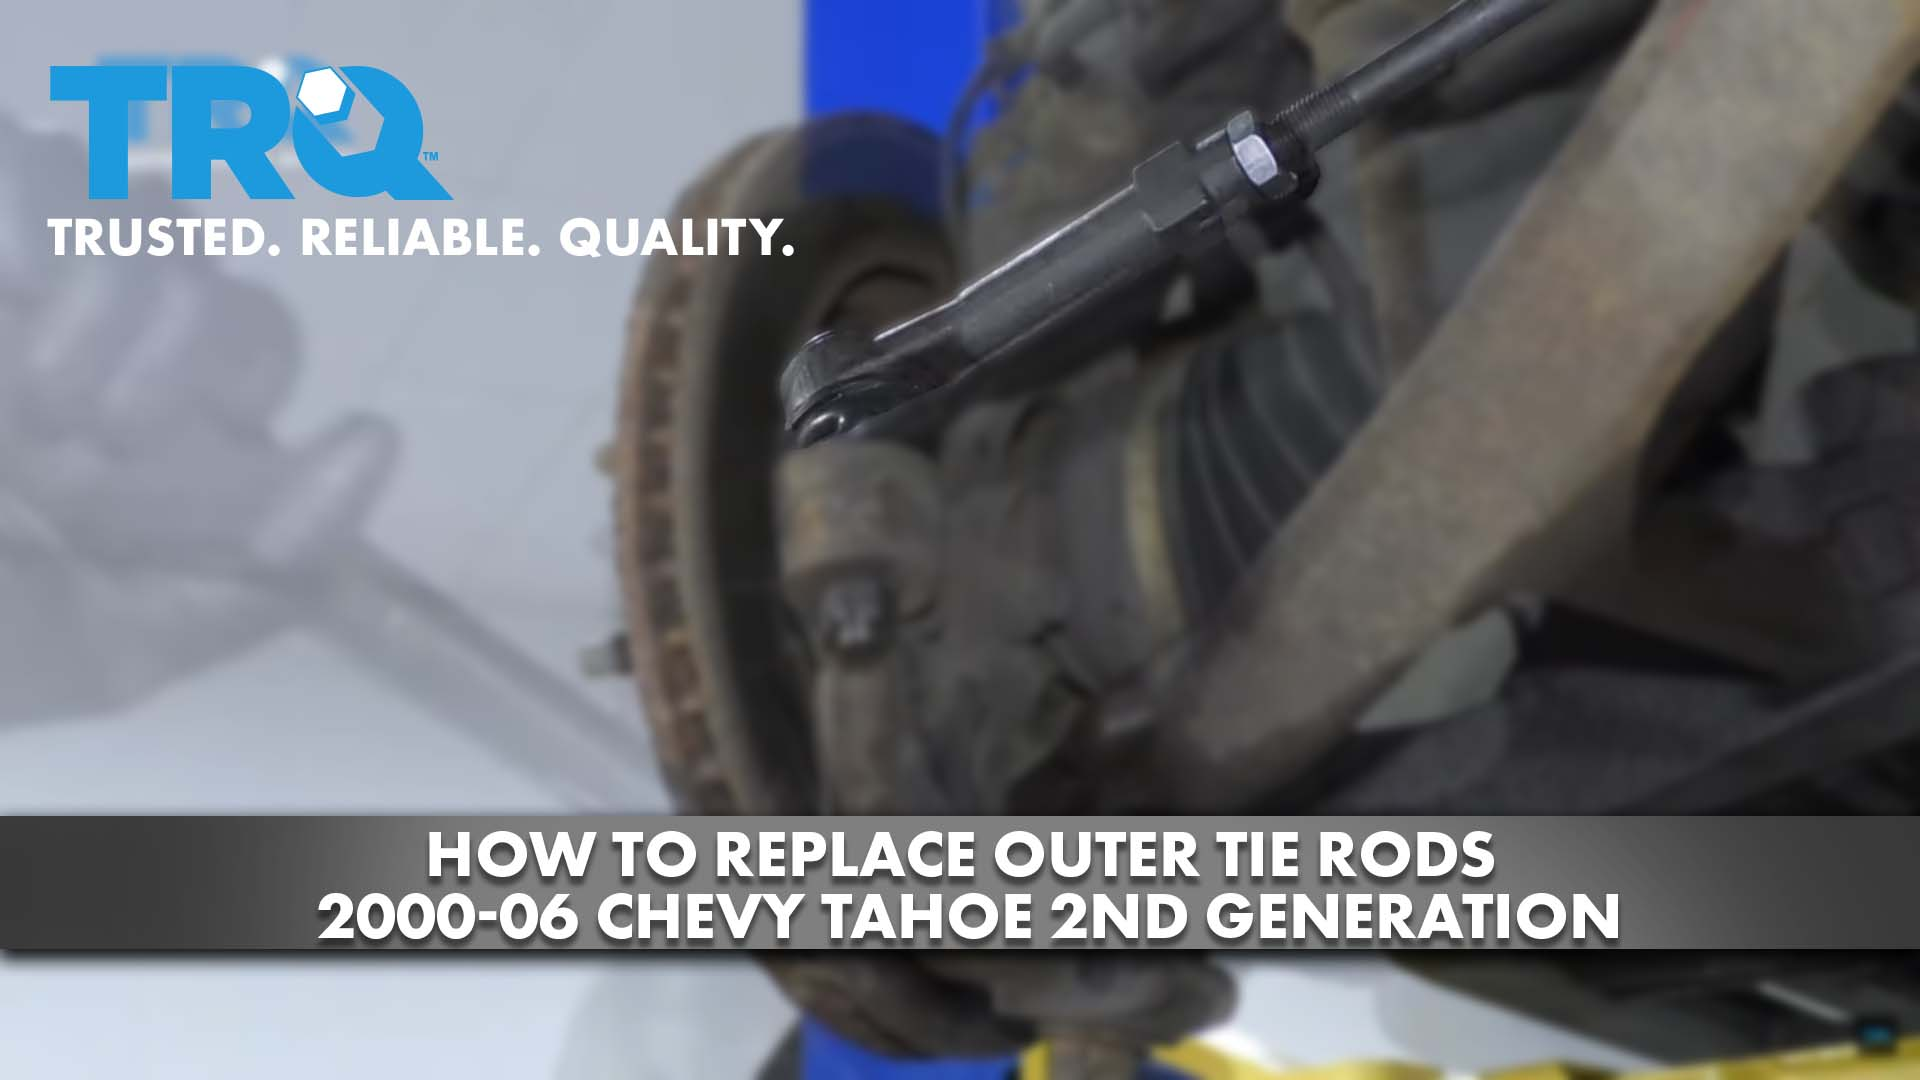 How to Replace Outer Tie Rods 2000-06 Chevy Tahoe 2nd Generation